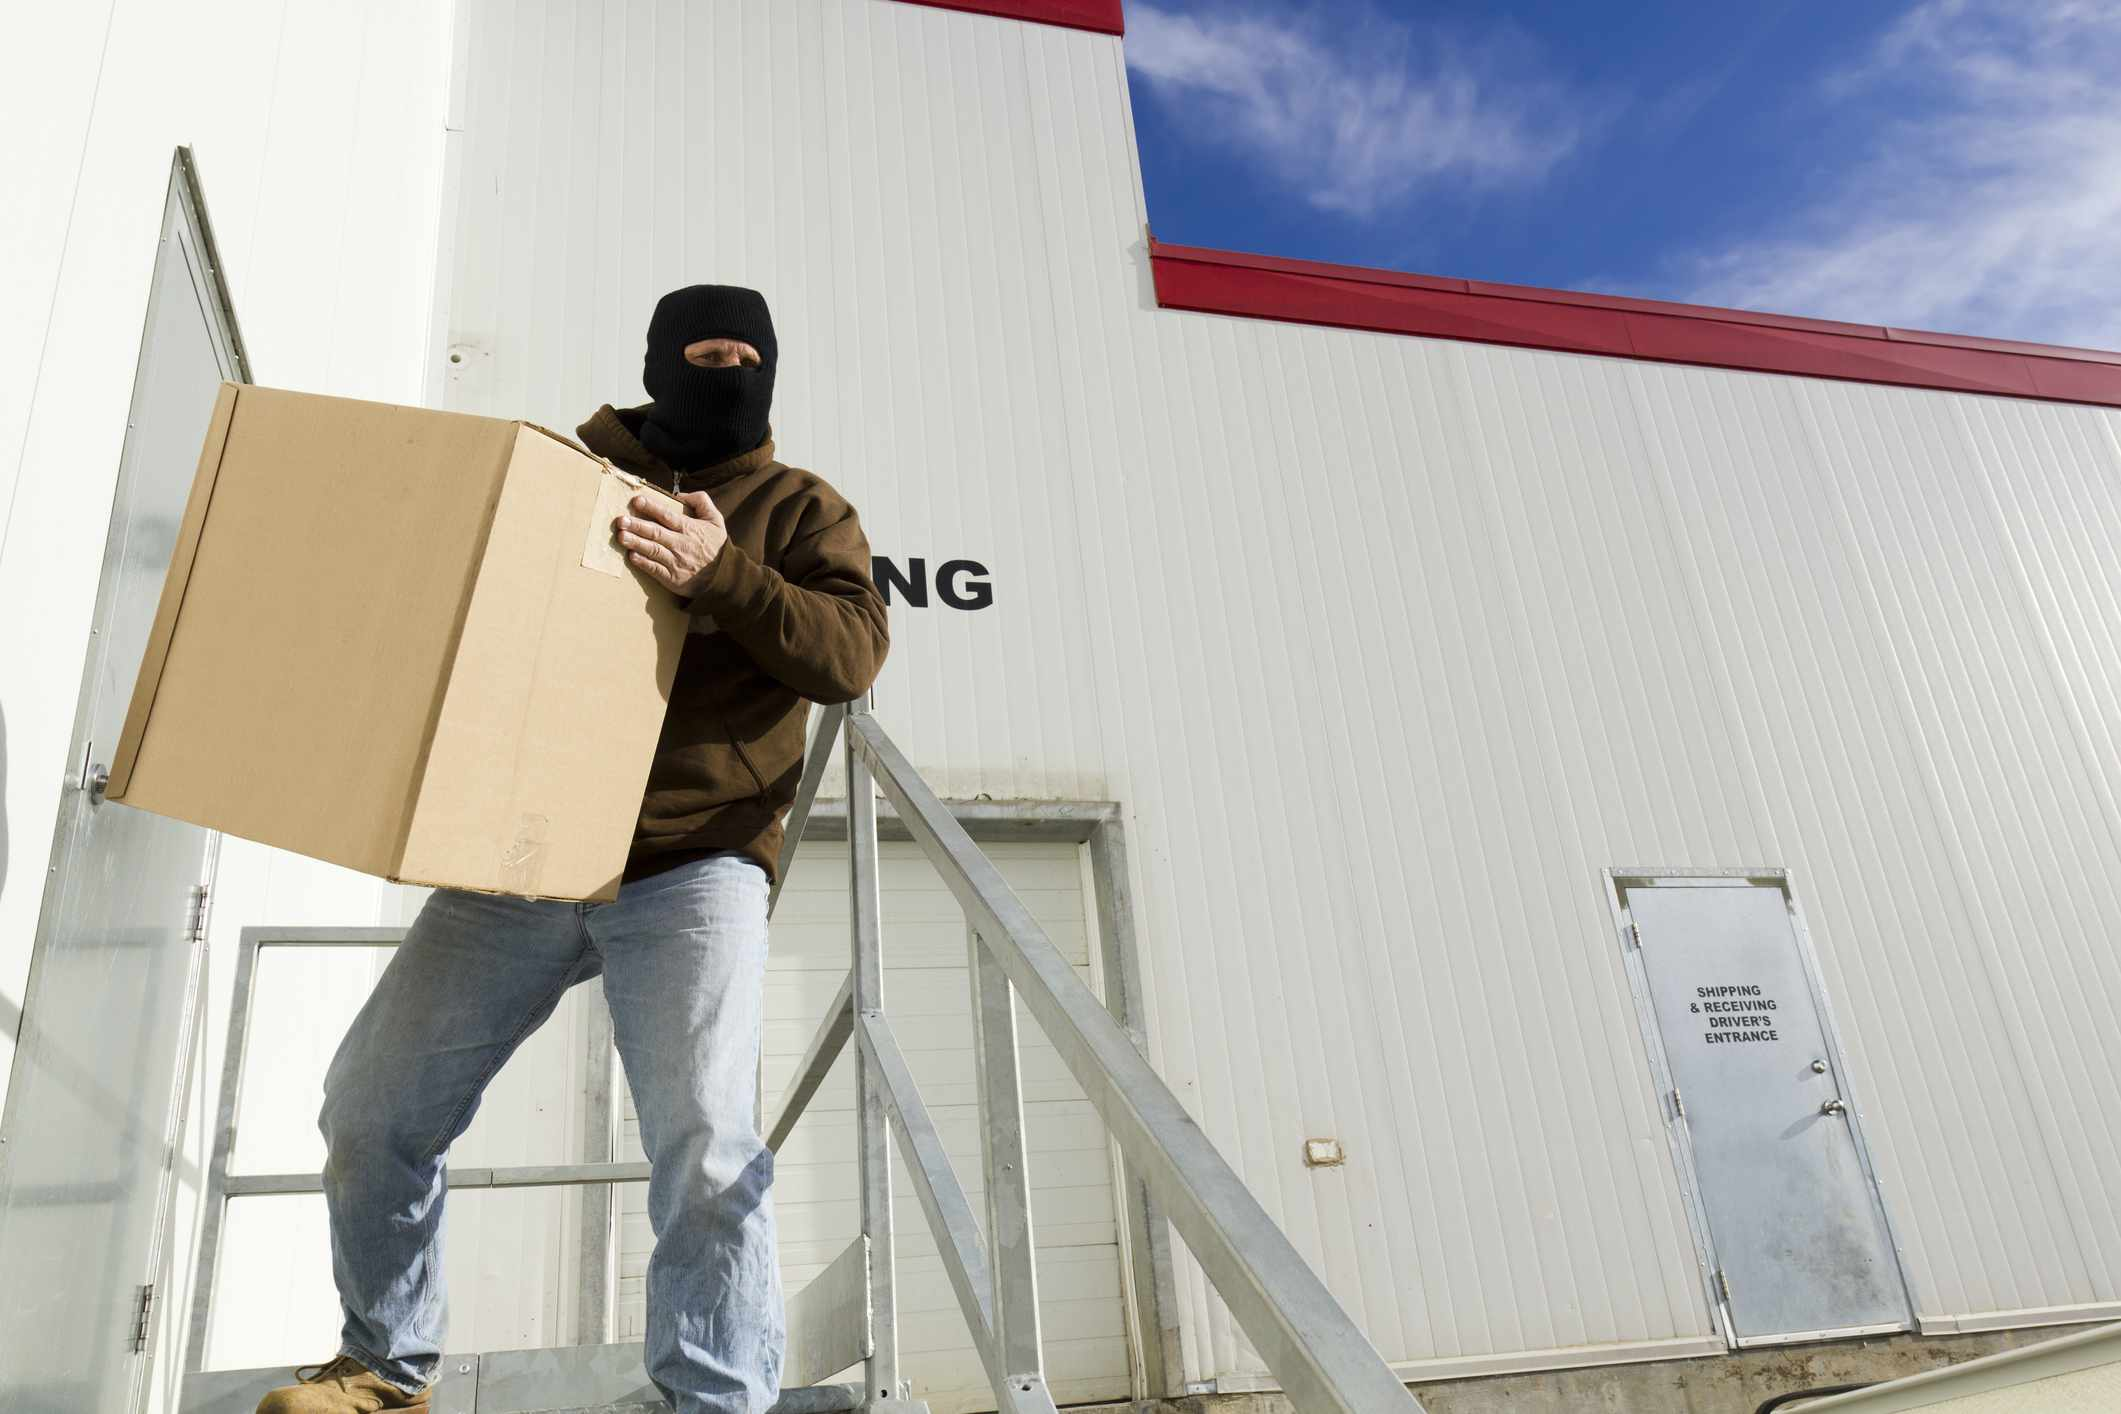 Man wearing a ski mask and stealing a package from a warehouse